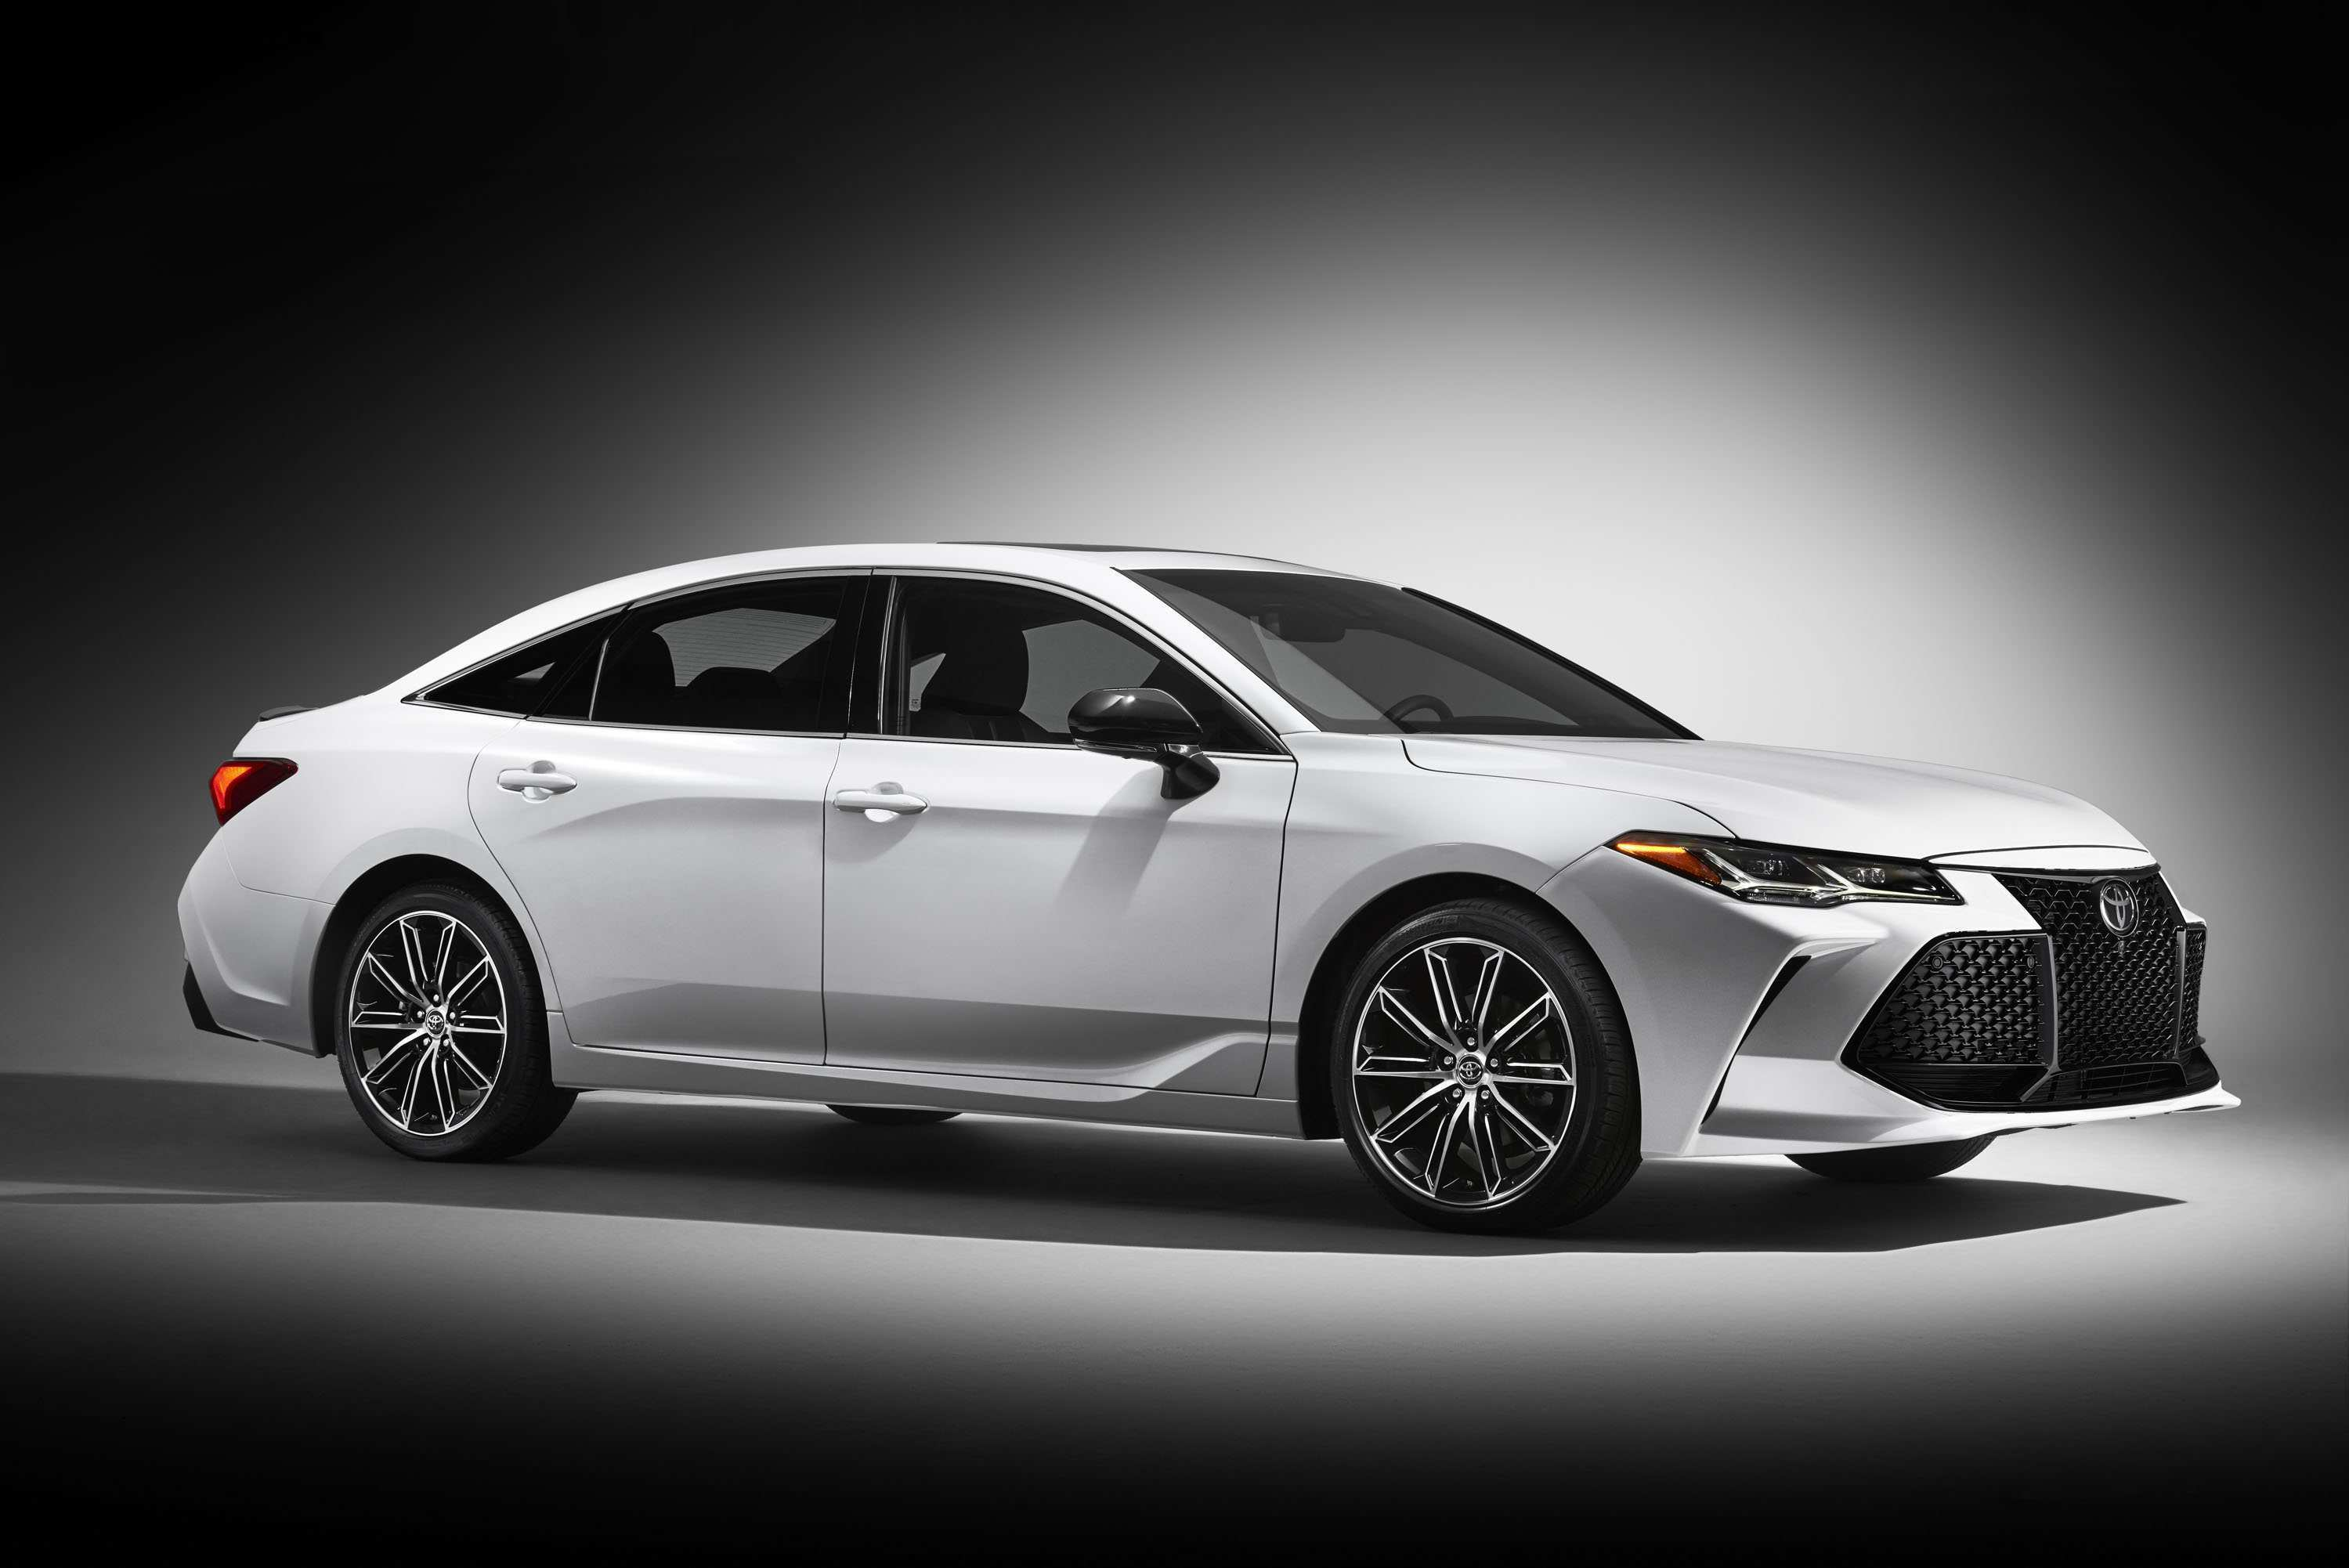 66 Concept of 2019 Toyota Avalon Review Specs for 2019 Toyota Avalon Review